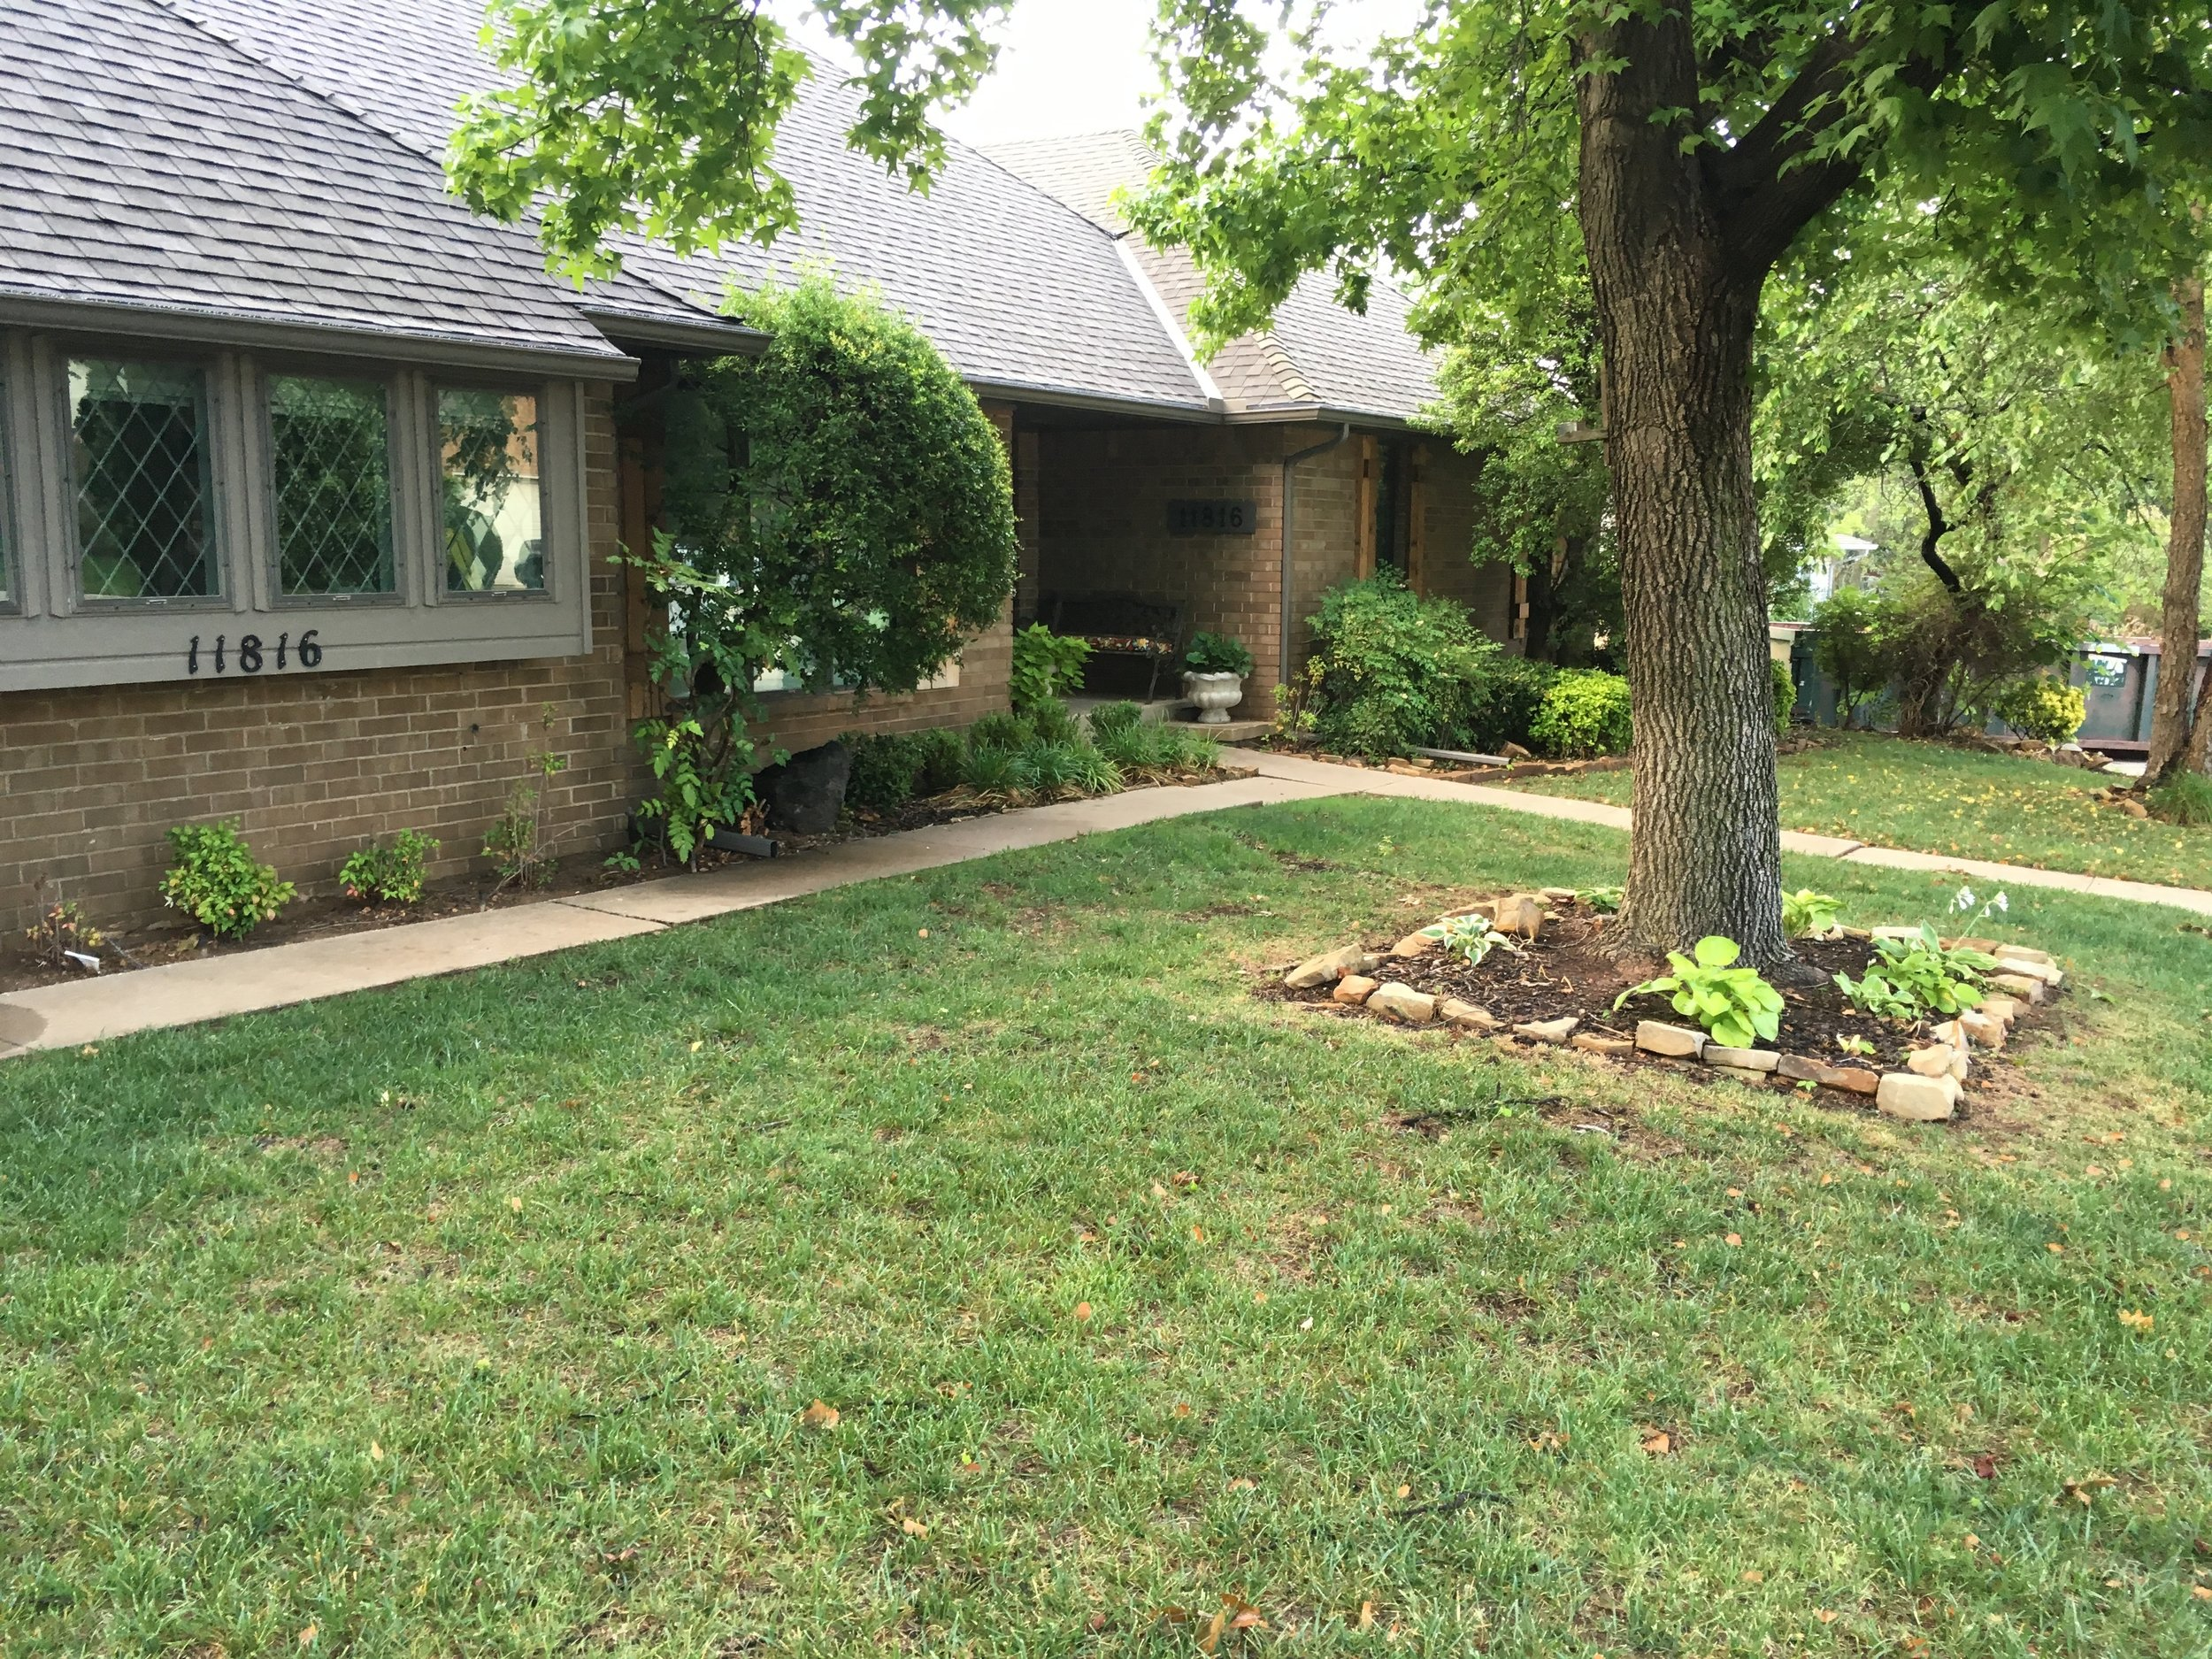 Example of a shady lawn that is thing and desperately in need of fall overseeding.